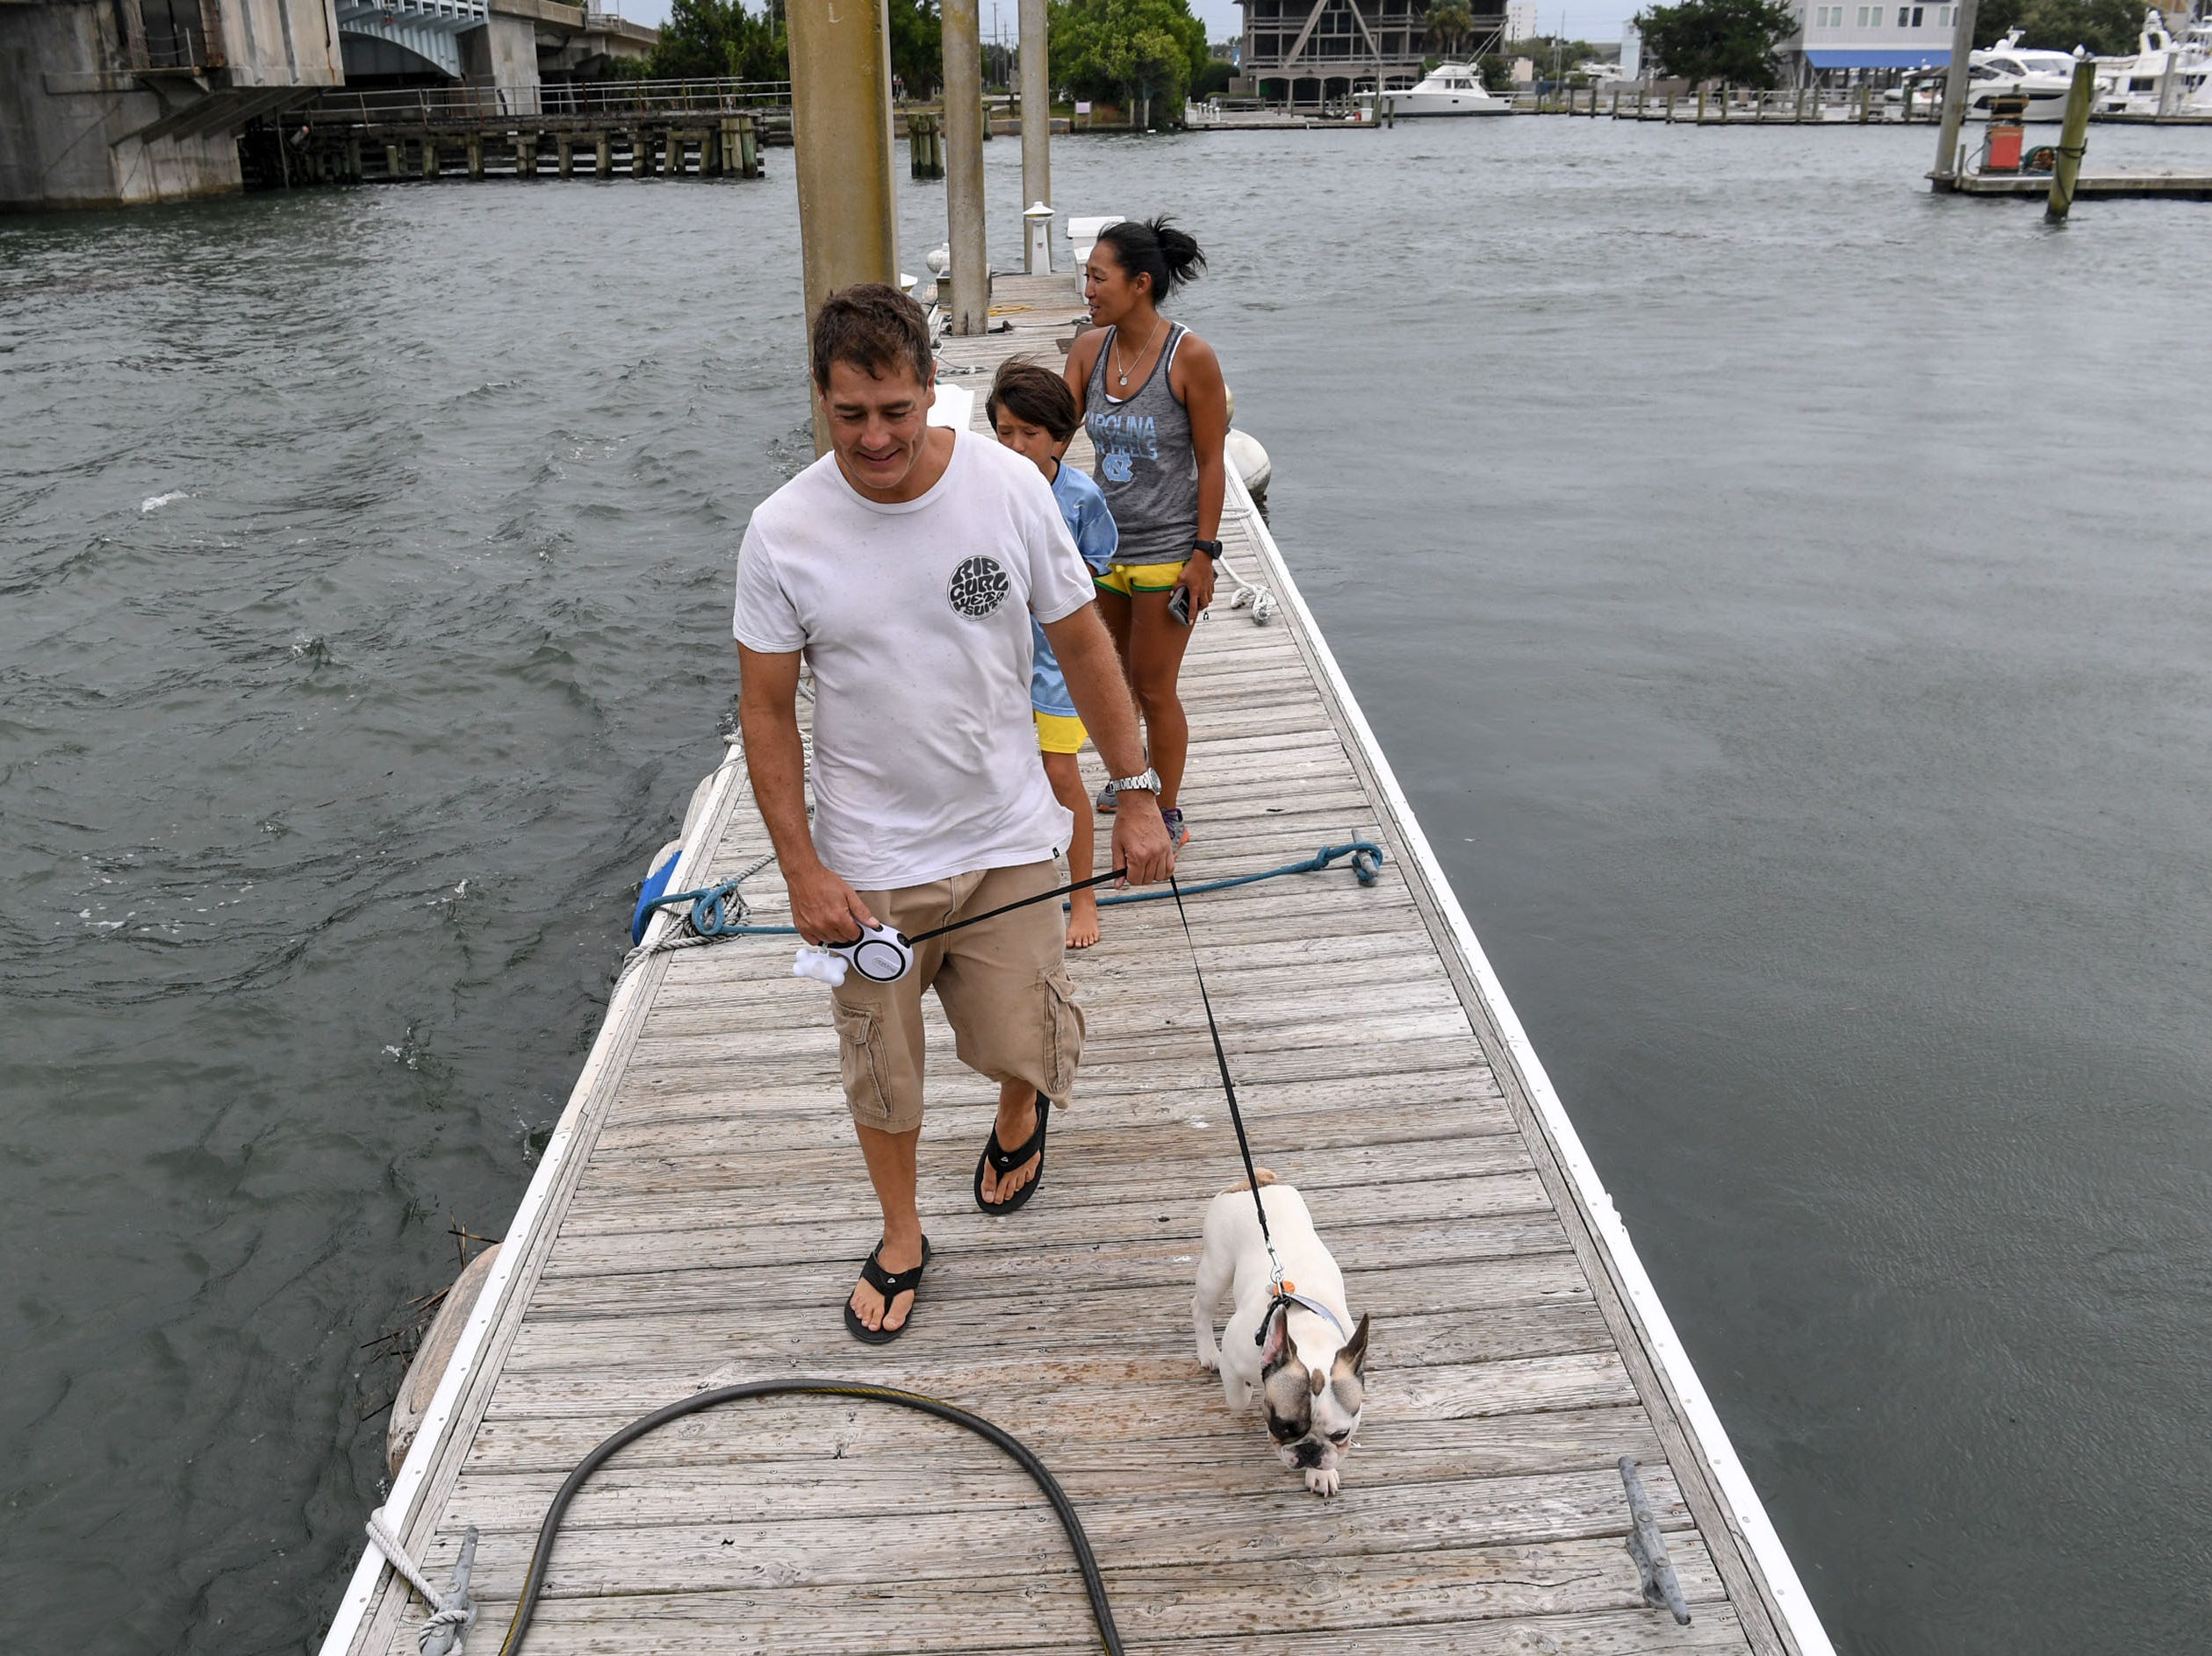 James Crowell walks Henry the dog while Kim Crowell and their son Gavin Crowell walk off a dock with gusts of wind at Wrightville Beach marina in Wilmington, North Carolina on Thursday, September 13, 2018. (Ken Ruinard / Greenville News / Gannett USA Today Network / 2018 )